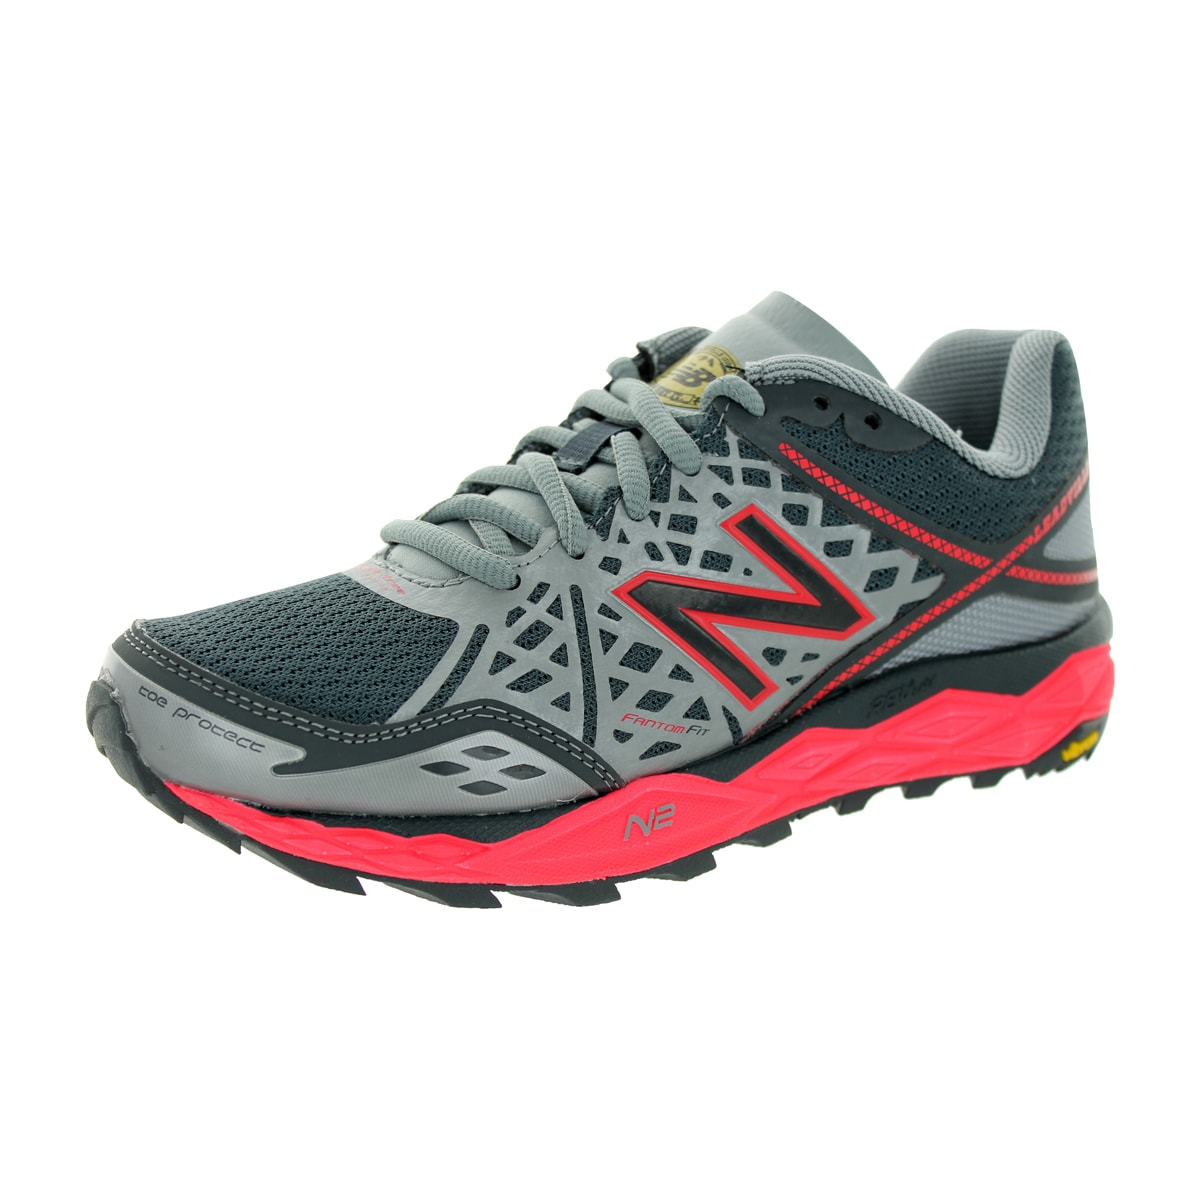 New Balance Women's Leaille 1210V2 Brightt Cherry With Or...